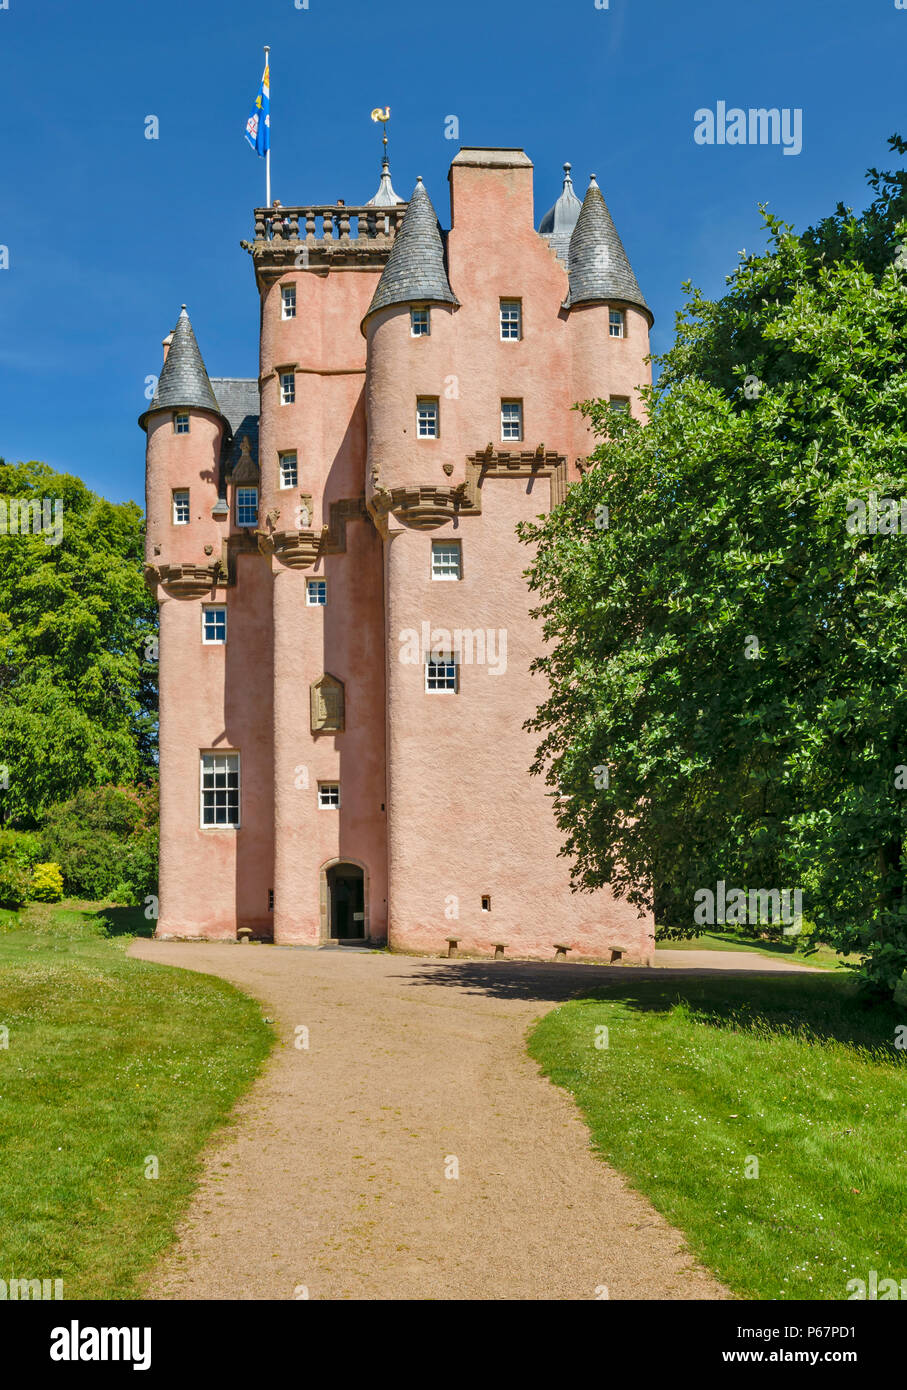 CRAIGIEVAR CASTLE ABERDEENSHIRE SCOTLAND MAIN ENTRANCE AND PEOPLE AT THE TOP OF THE TOWER - Stock Image